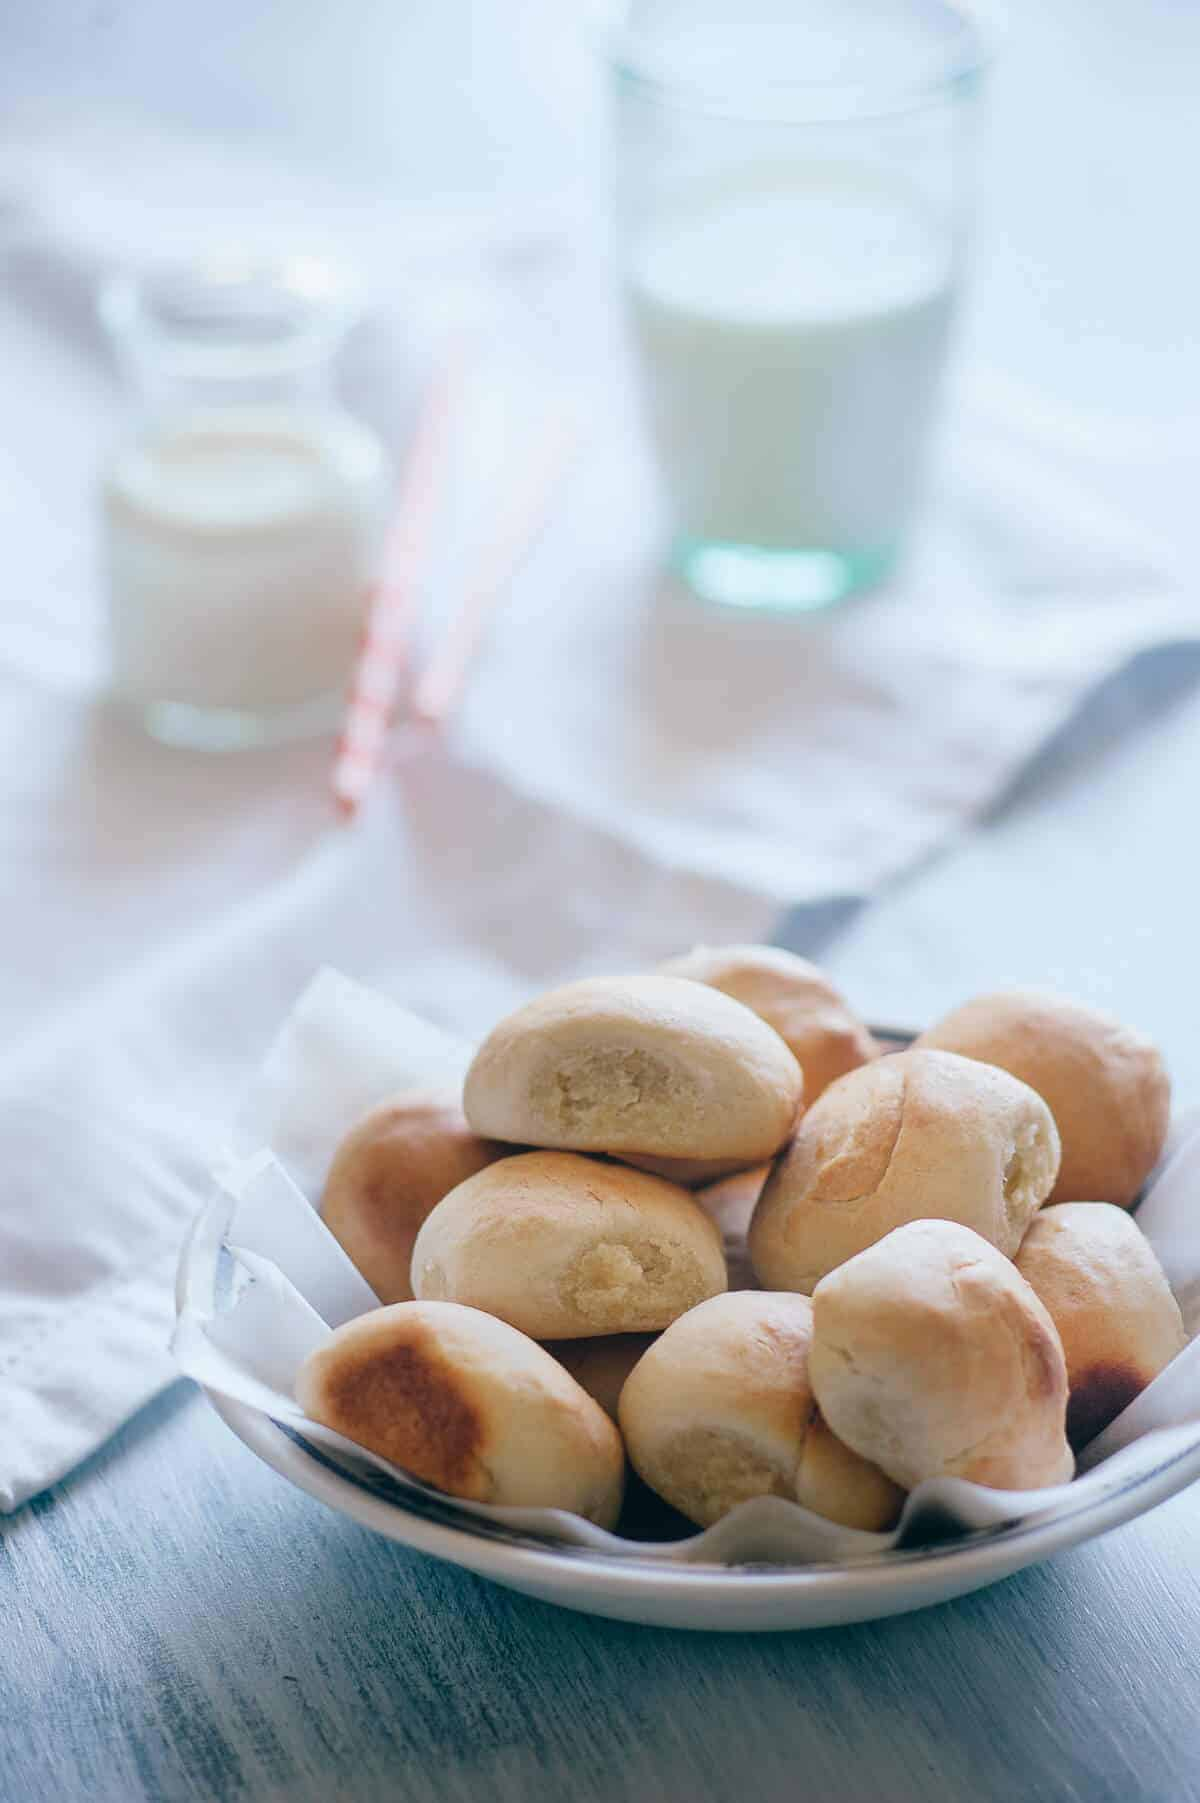 a bowl of homemade sweet bread rolls on a light blue table